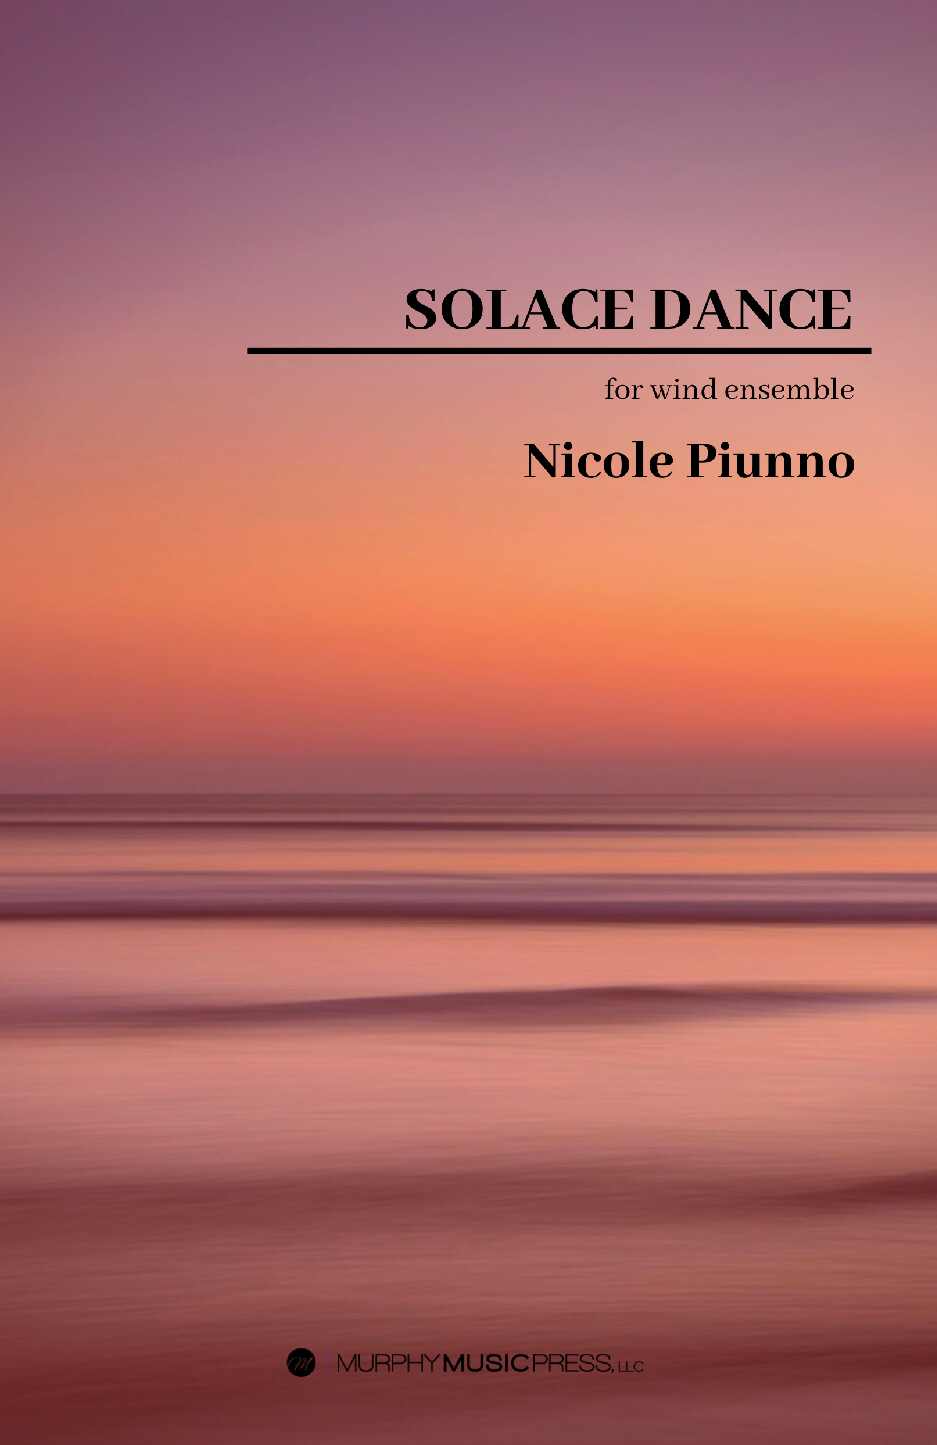 Solace Dance  by Nicole Piunno